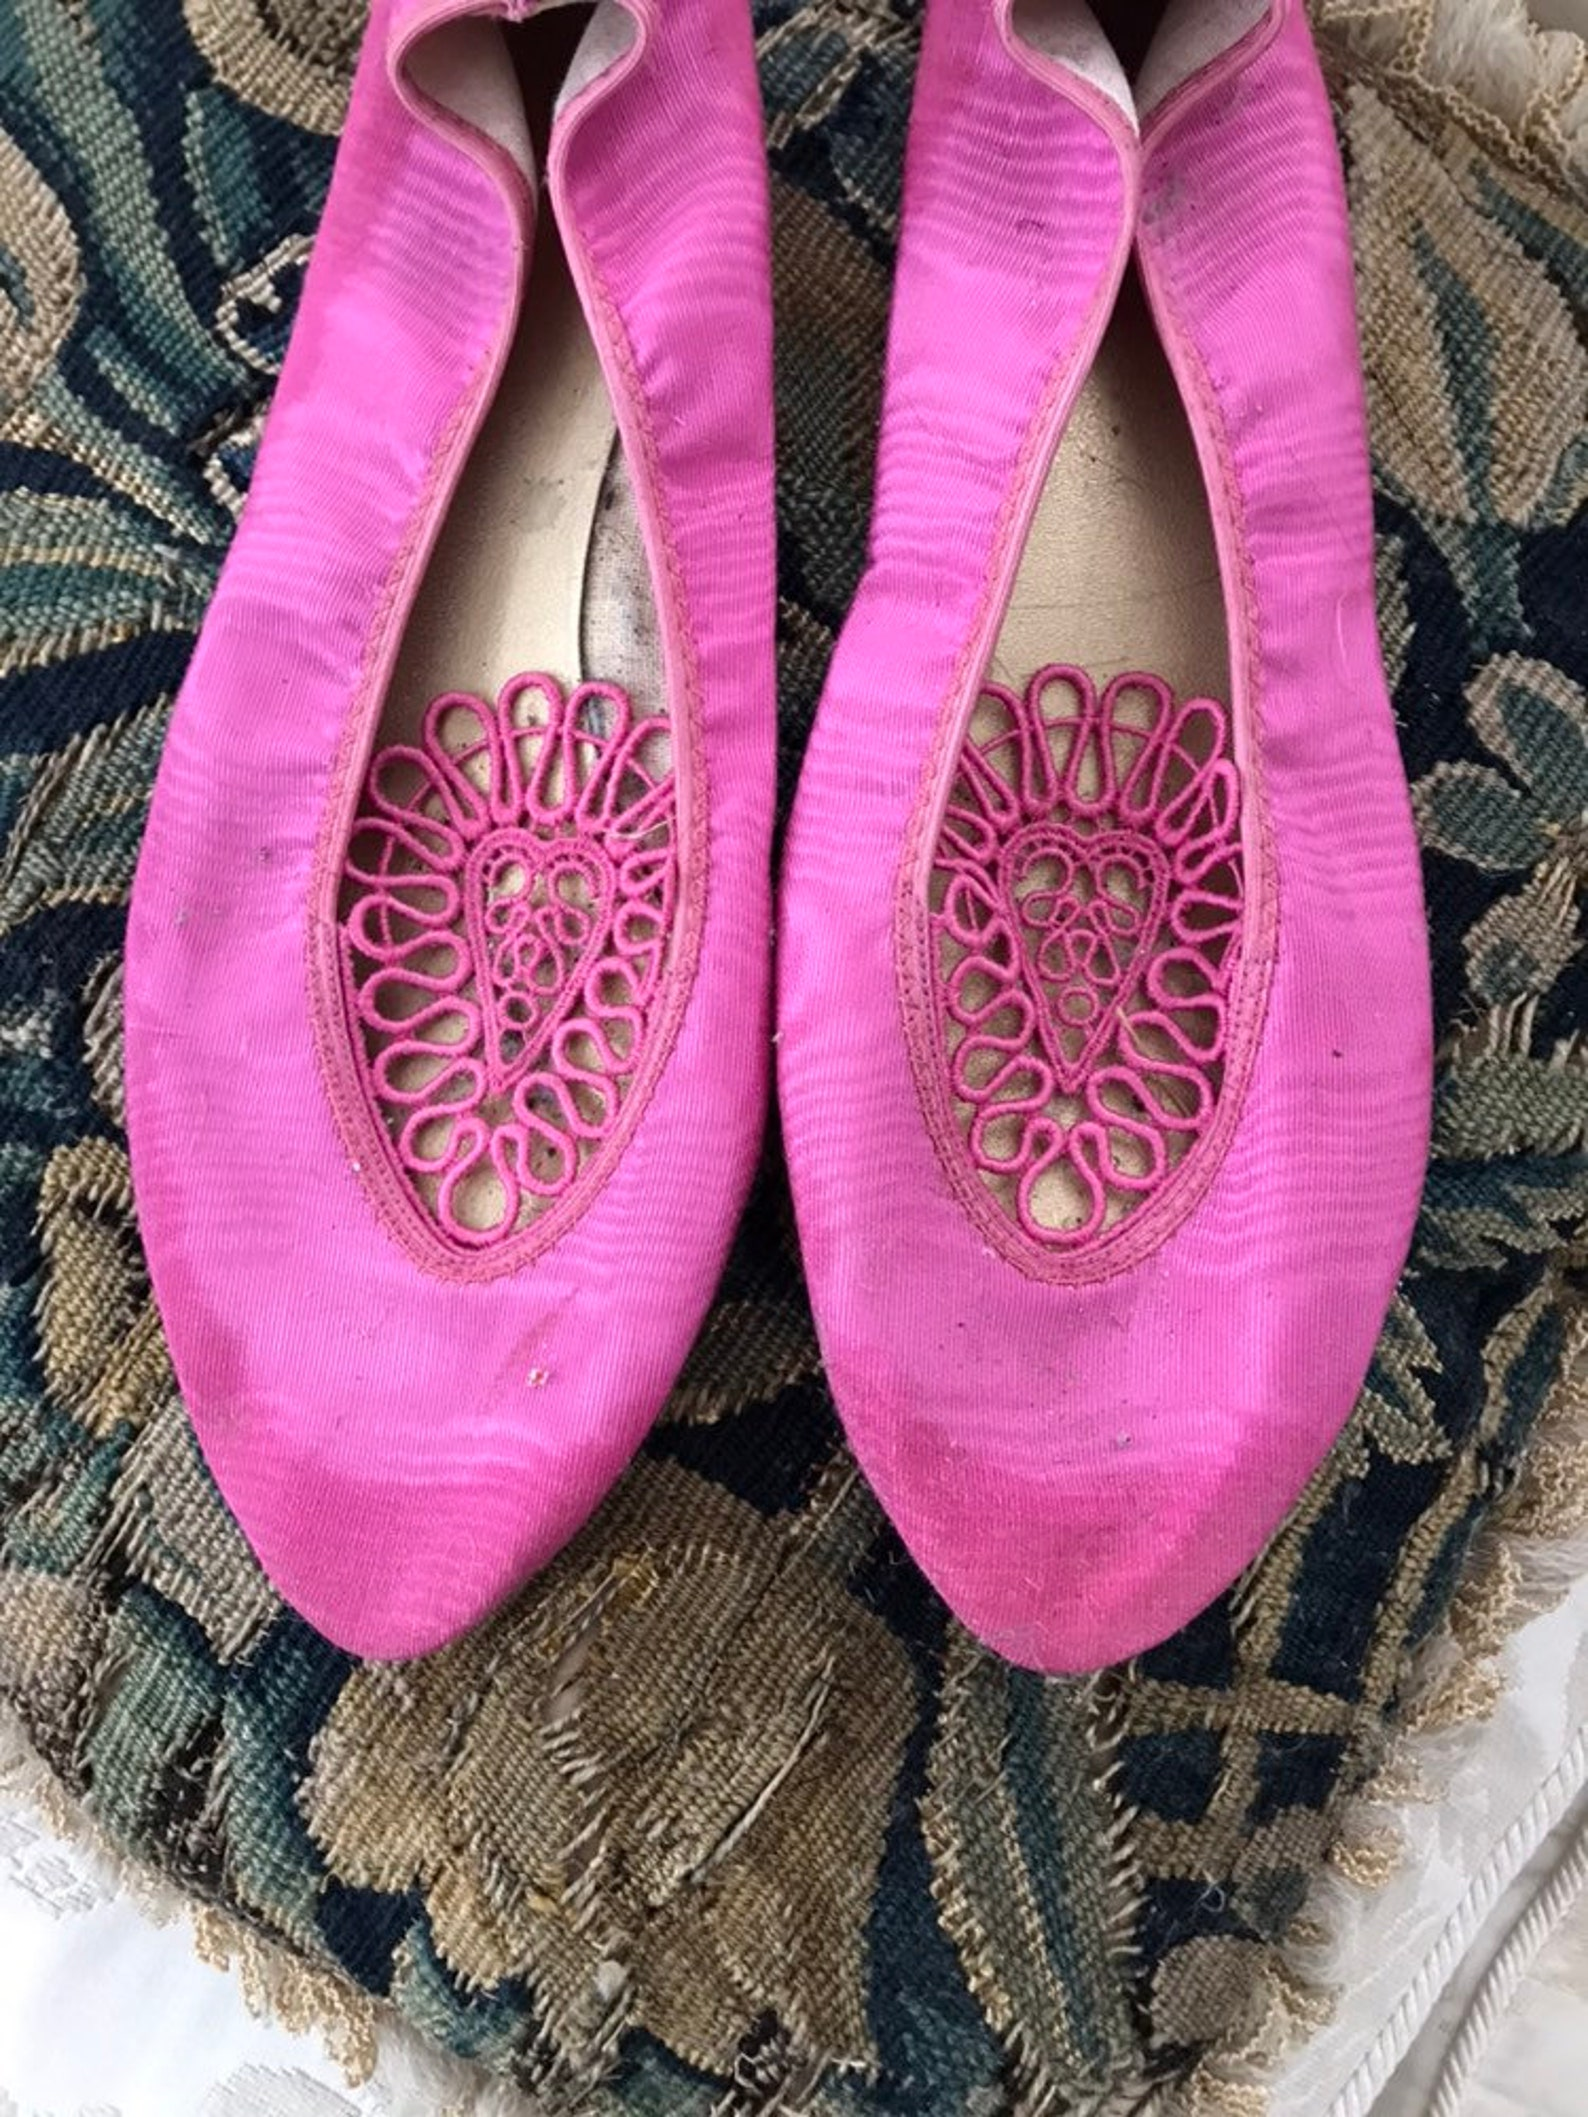 vintage gustave lace pink embroidered ballet shoes flats sz 7